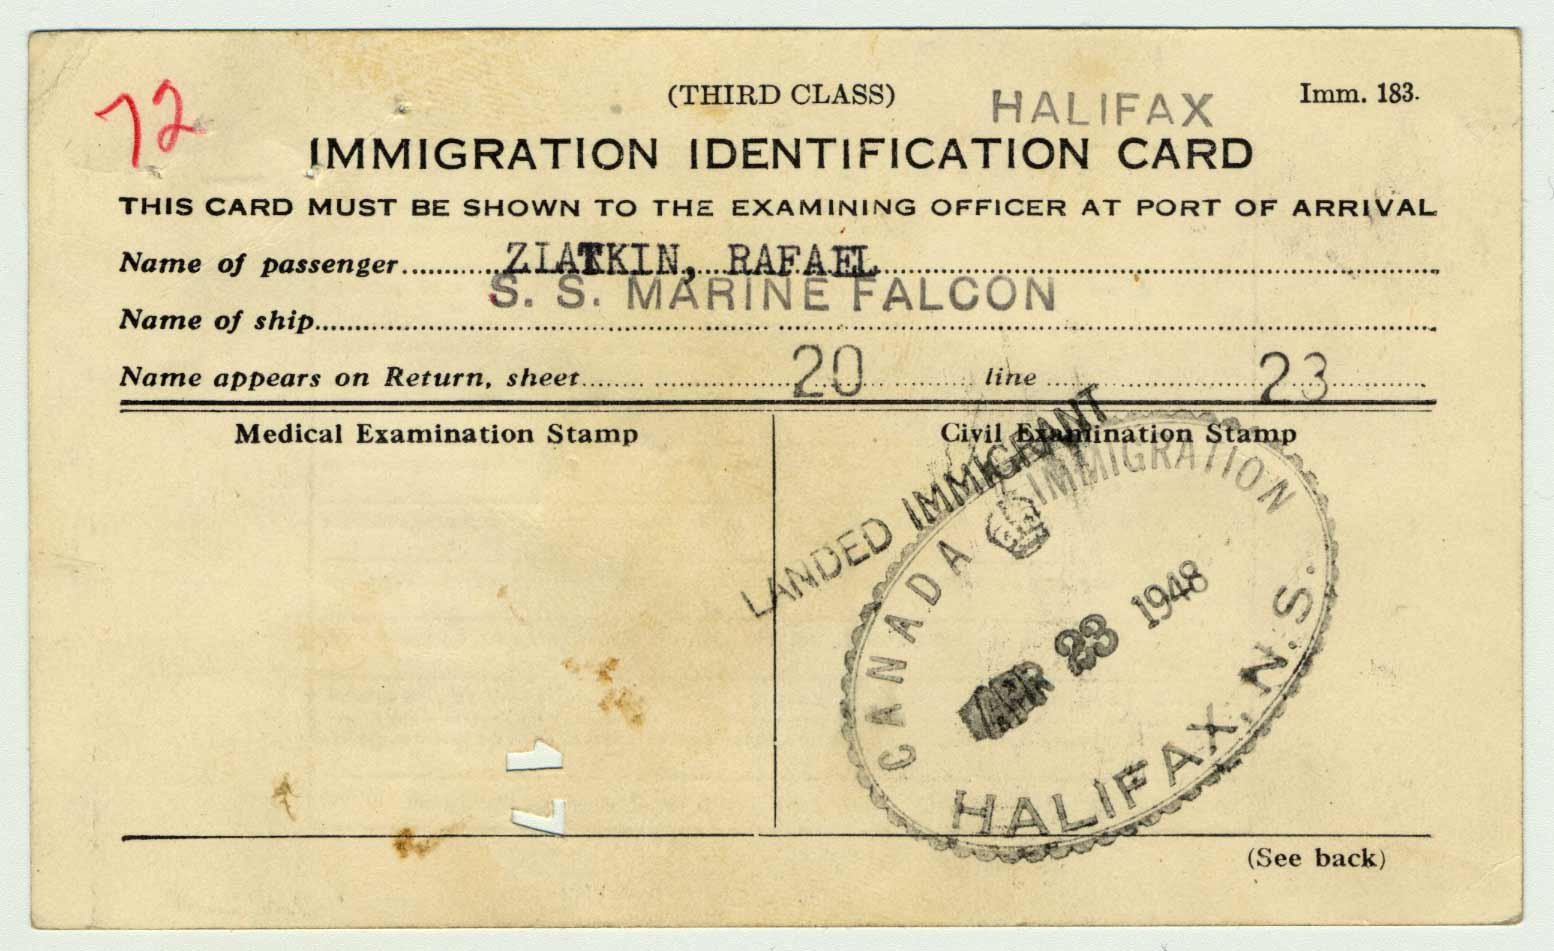 Rafael Zlatkin's immigration card from his arrival in Halifax on April 23, 1948.